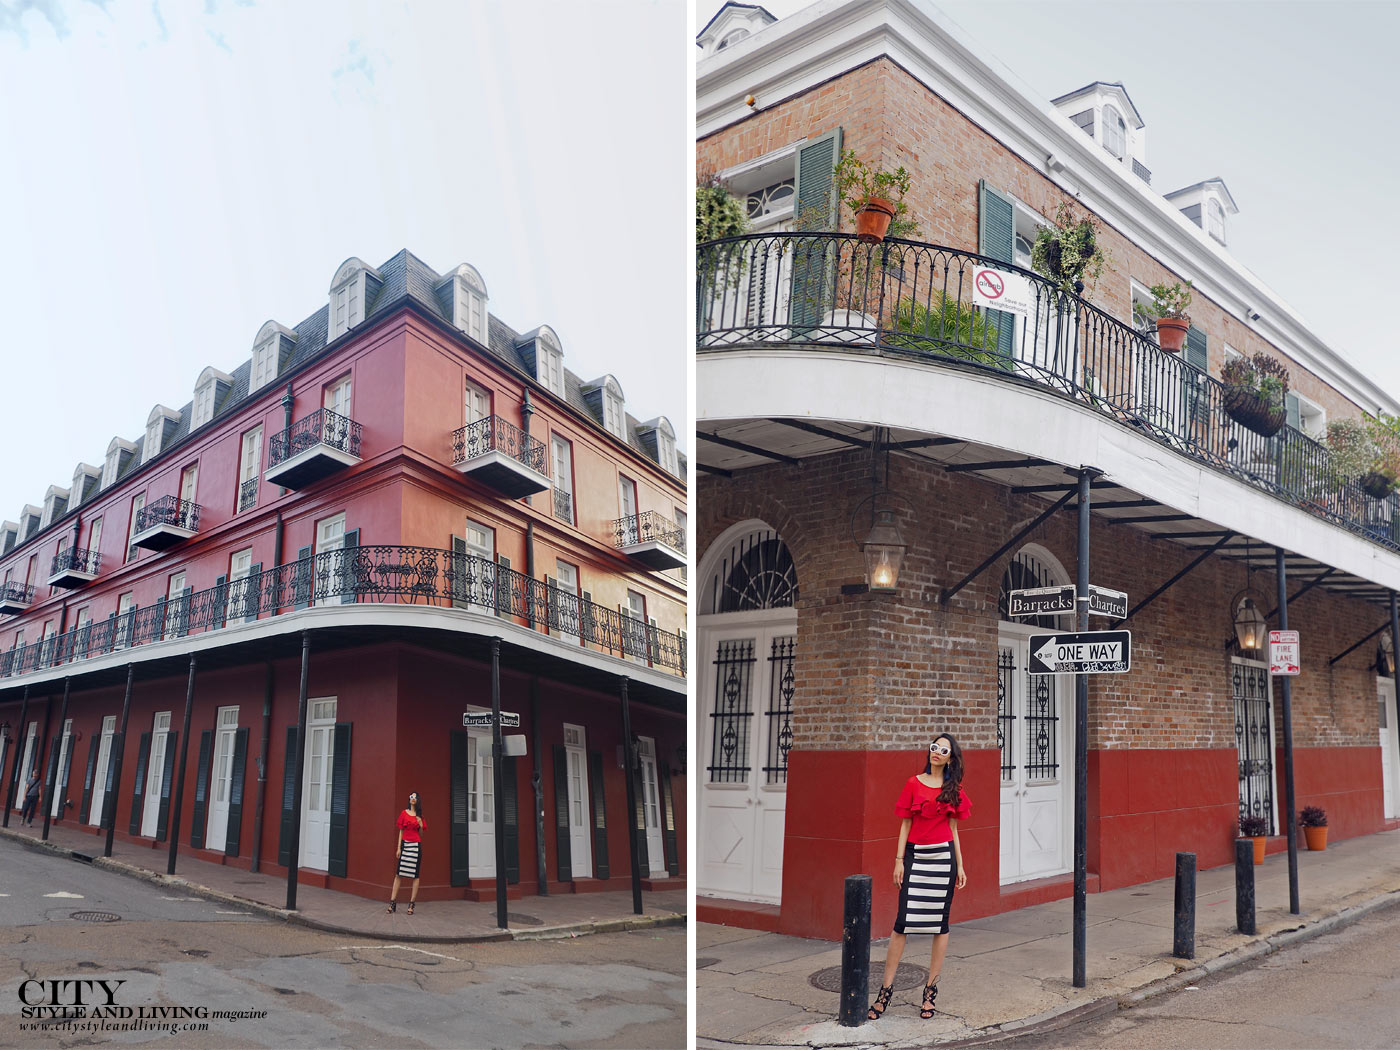 City style and living magazine The Editors Notebook style fashion blogger Shivana Maharaj french quarter new orleans ruffle top and striped skirt street corner architecture collage